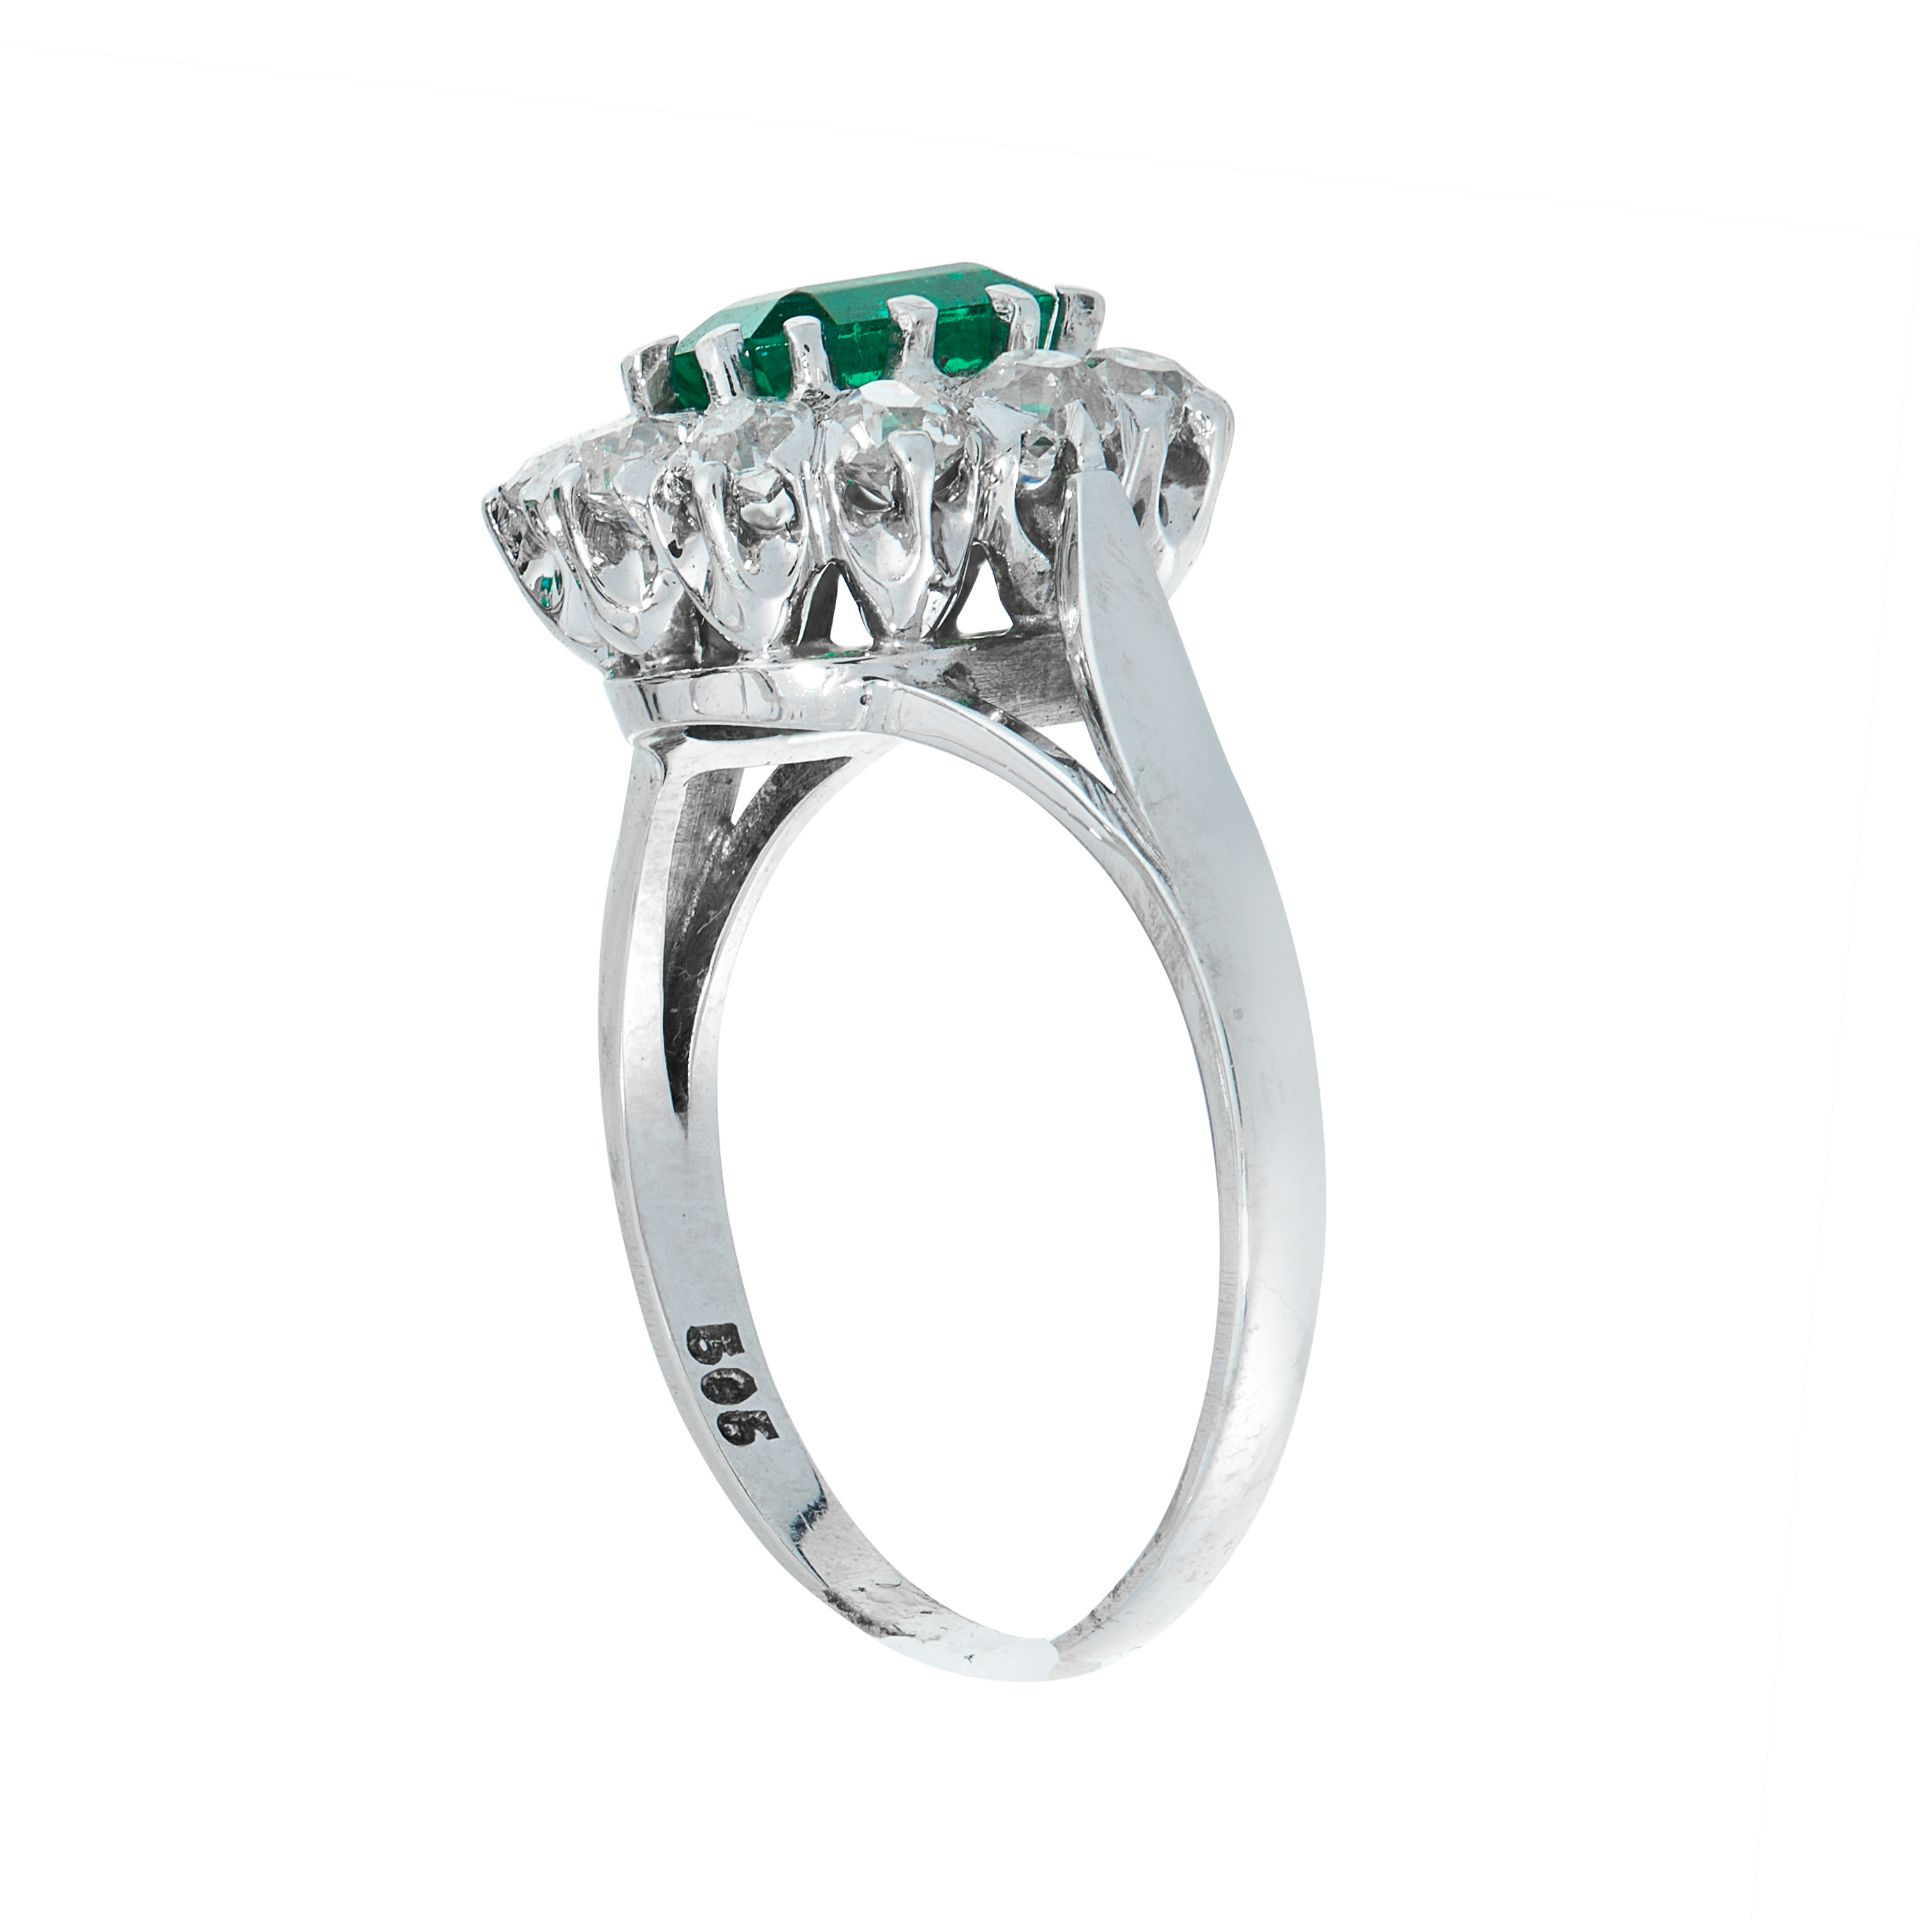 A COLOMBIAN EMERALD AND DIAMOND DRESS RING in 14ct white gold, set with an emerald cut emerald of - Image 2 of 2